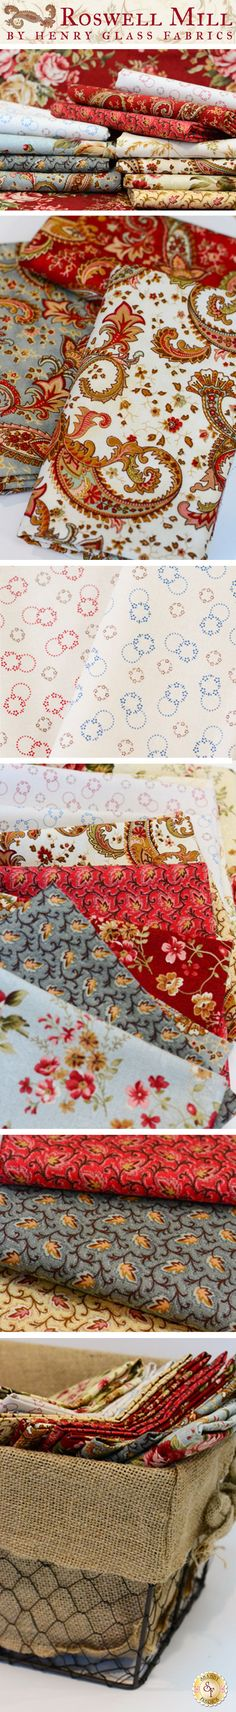 Roswell Mill by Little Quilts from Henry Glass Fabrics is a whimsical floral fabric collection available at Shabby Fabrics